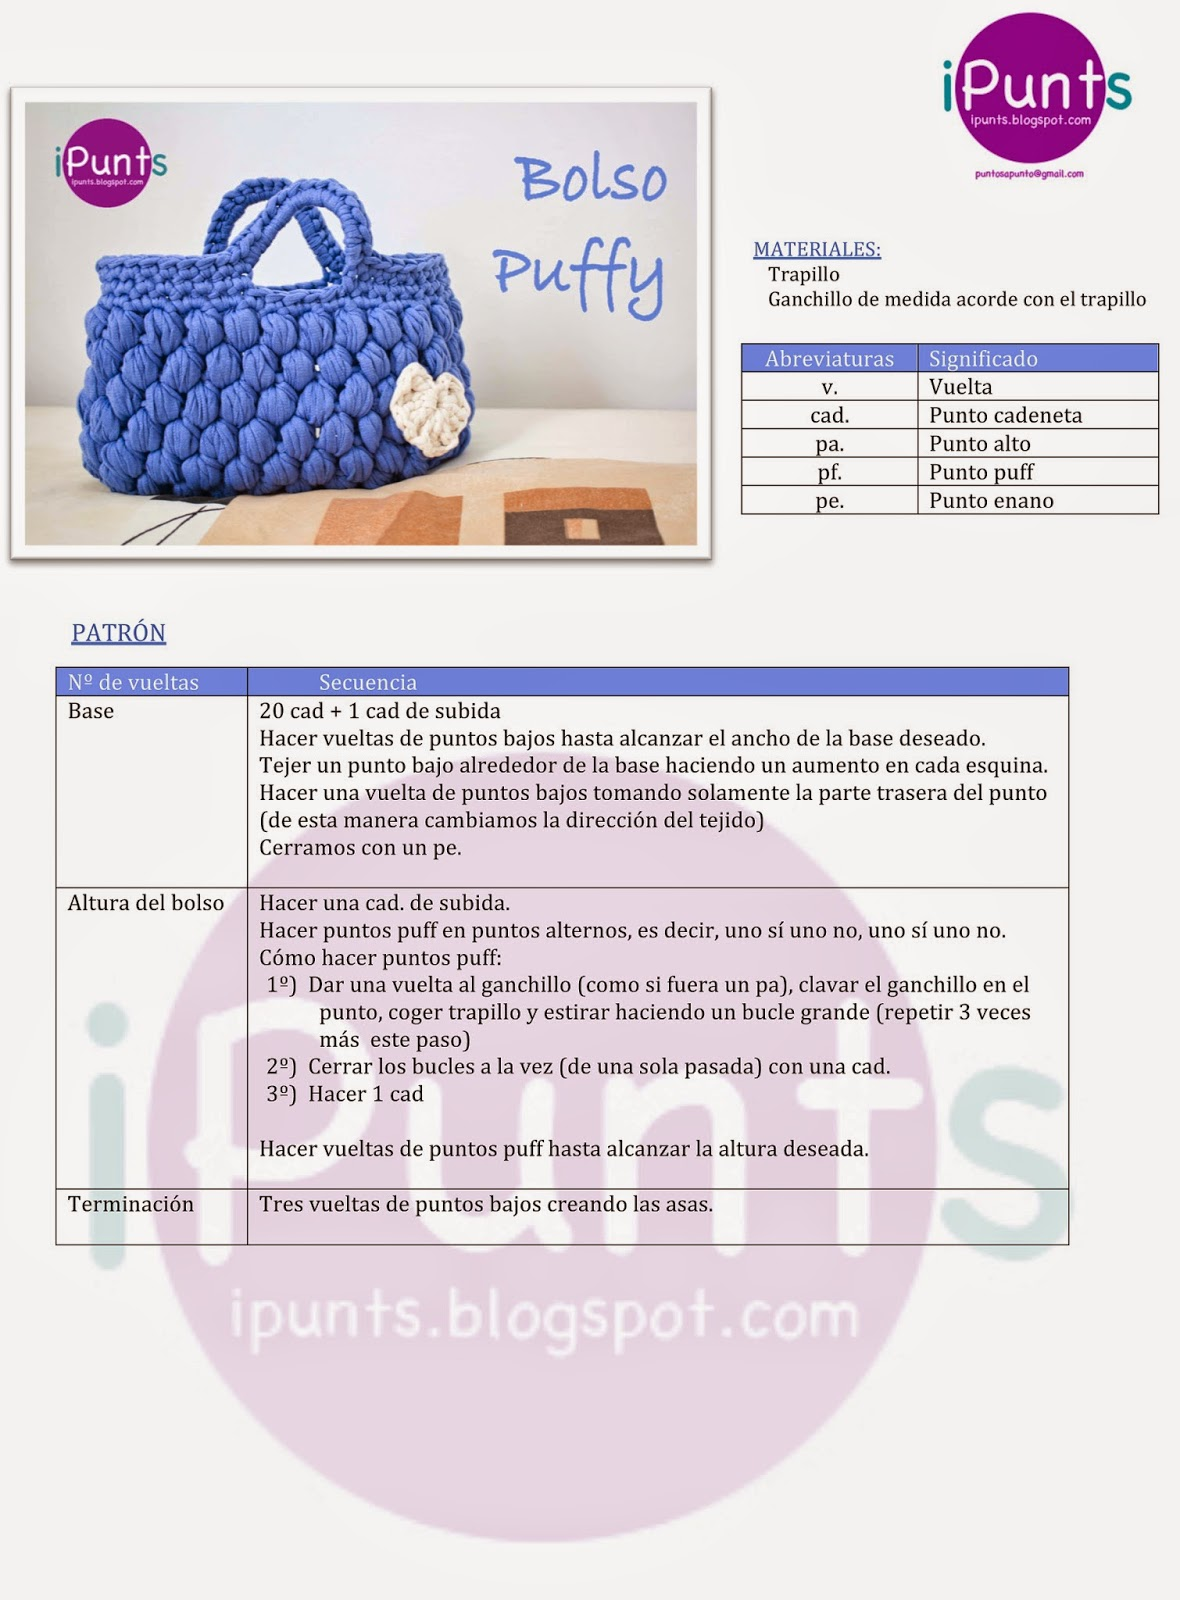 ipunts patrón ganchillo crochet bolso trapillo puff facil aprender